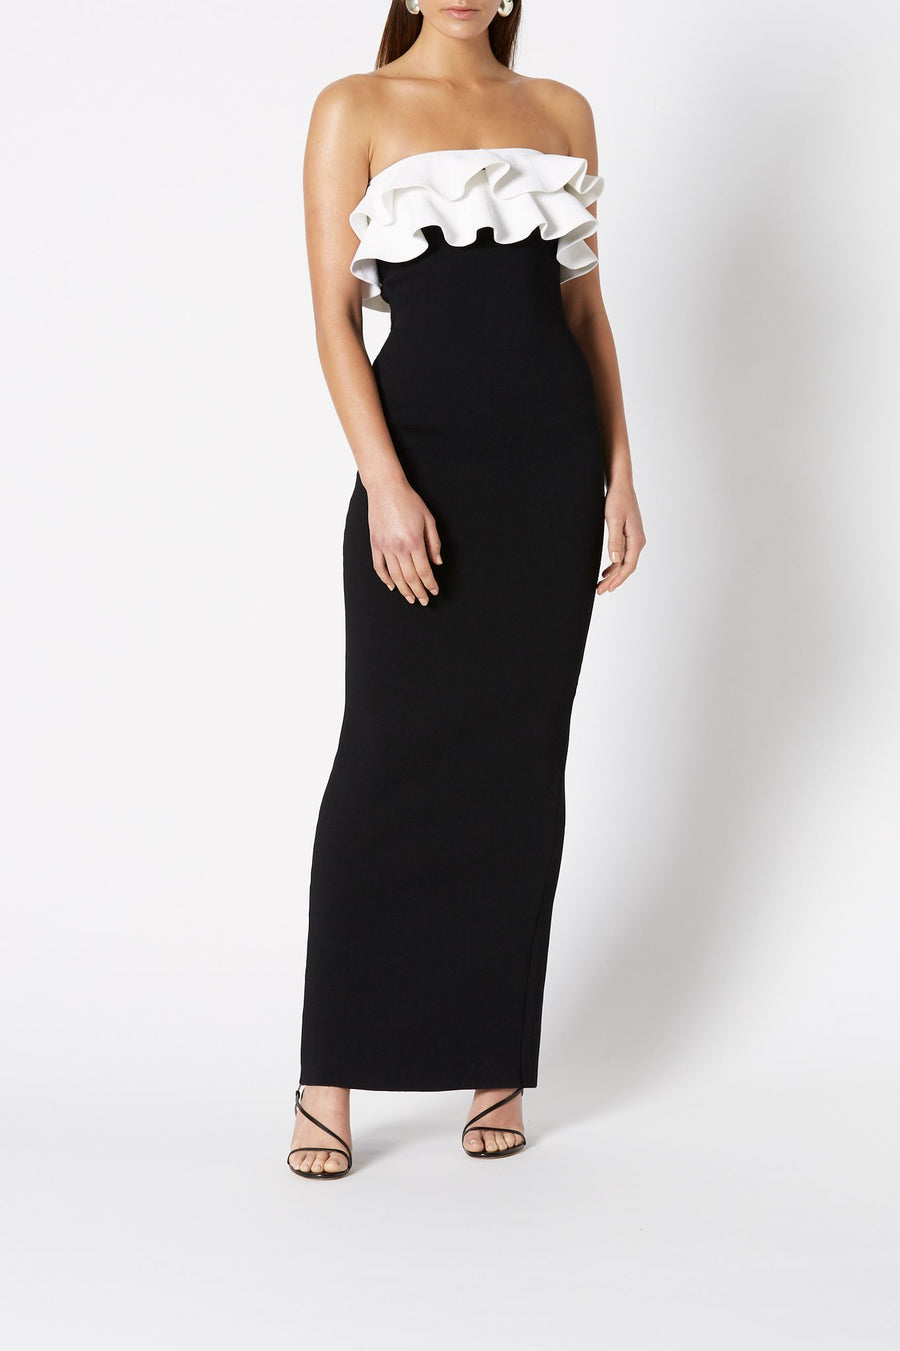 Crepe Knit Gown, Strapless Bodycon Long Dress, Ruffled Top, Color Black and white